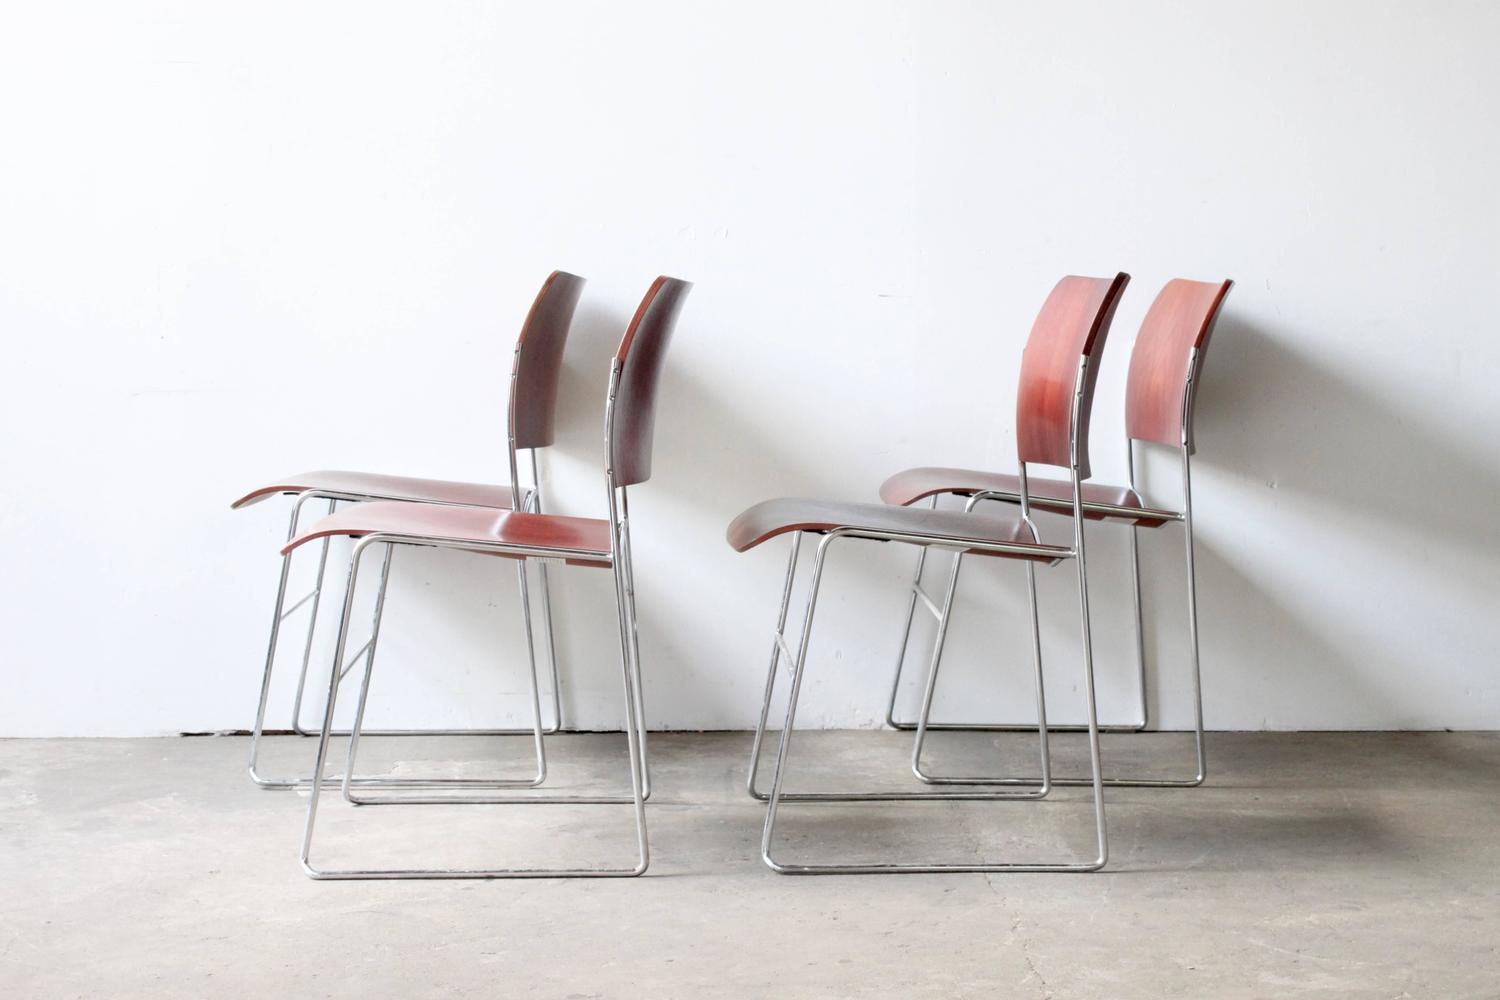 david rowland metal chair exercise ball target 40 4 stackable chairs at 1stdibs